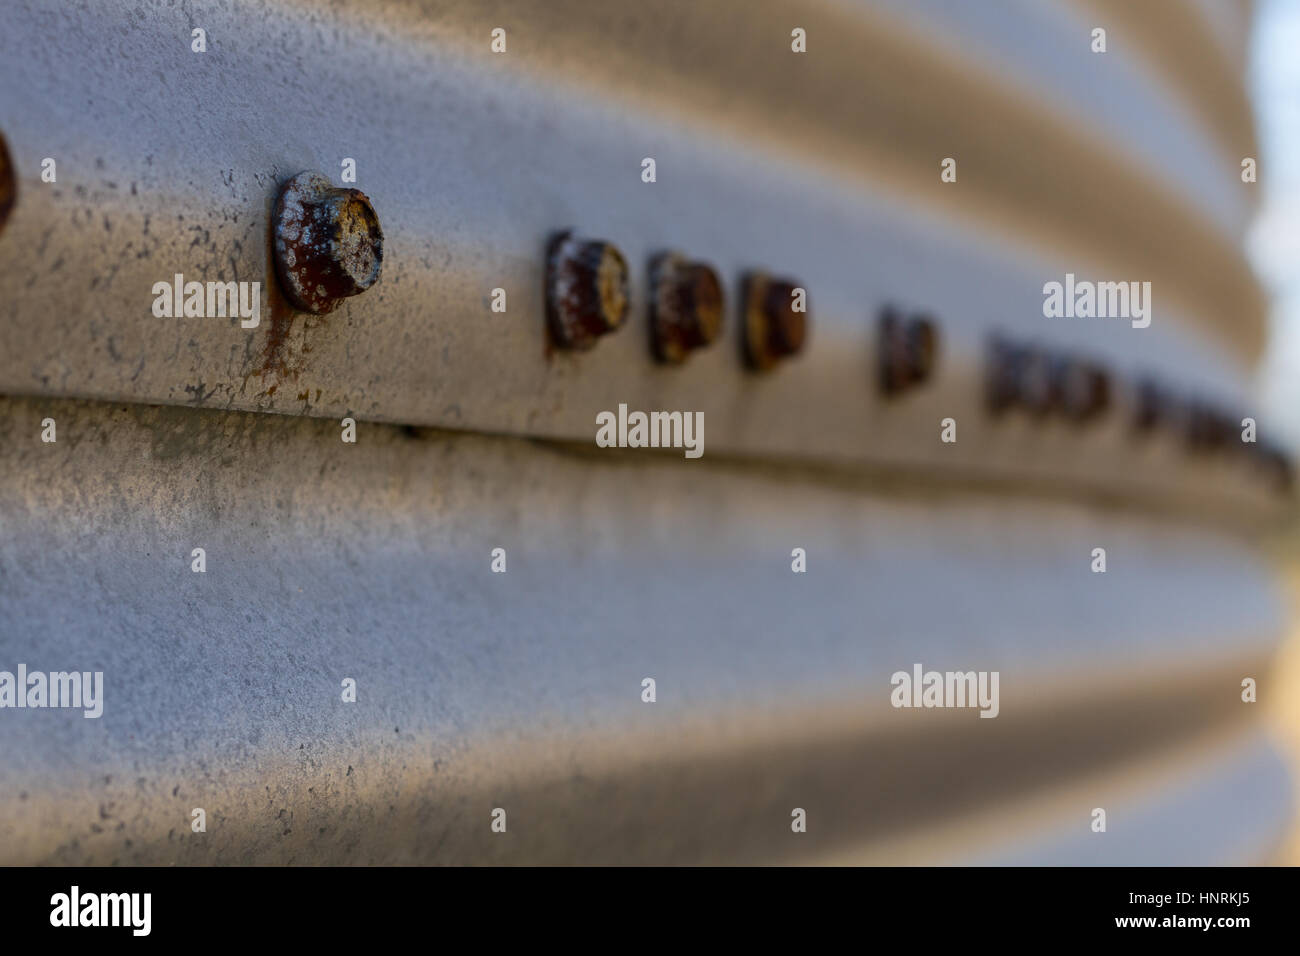 Row of rusty bolt heads fading out of focus on a galvanized sheet metal building - Stock Image